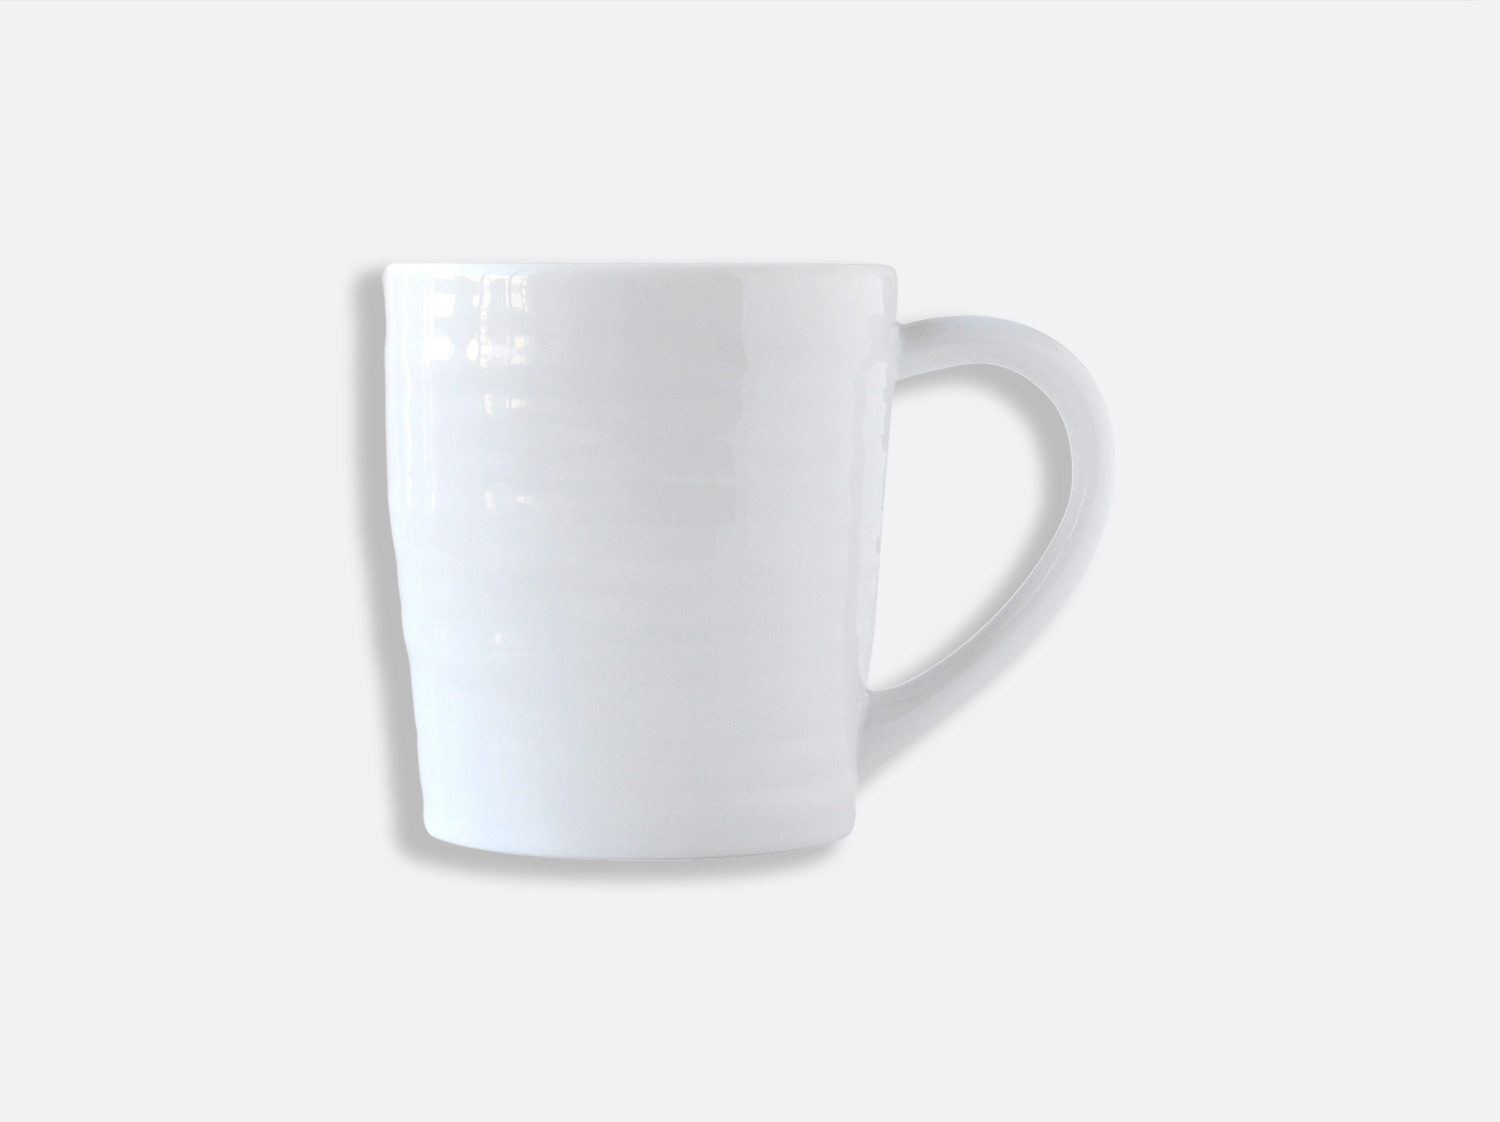 Mug 25 cl en porcelaine de la collection Origine Bernardaud